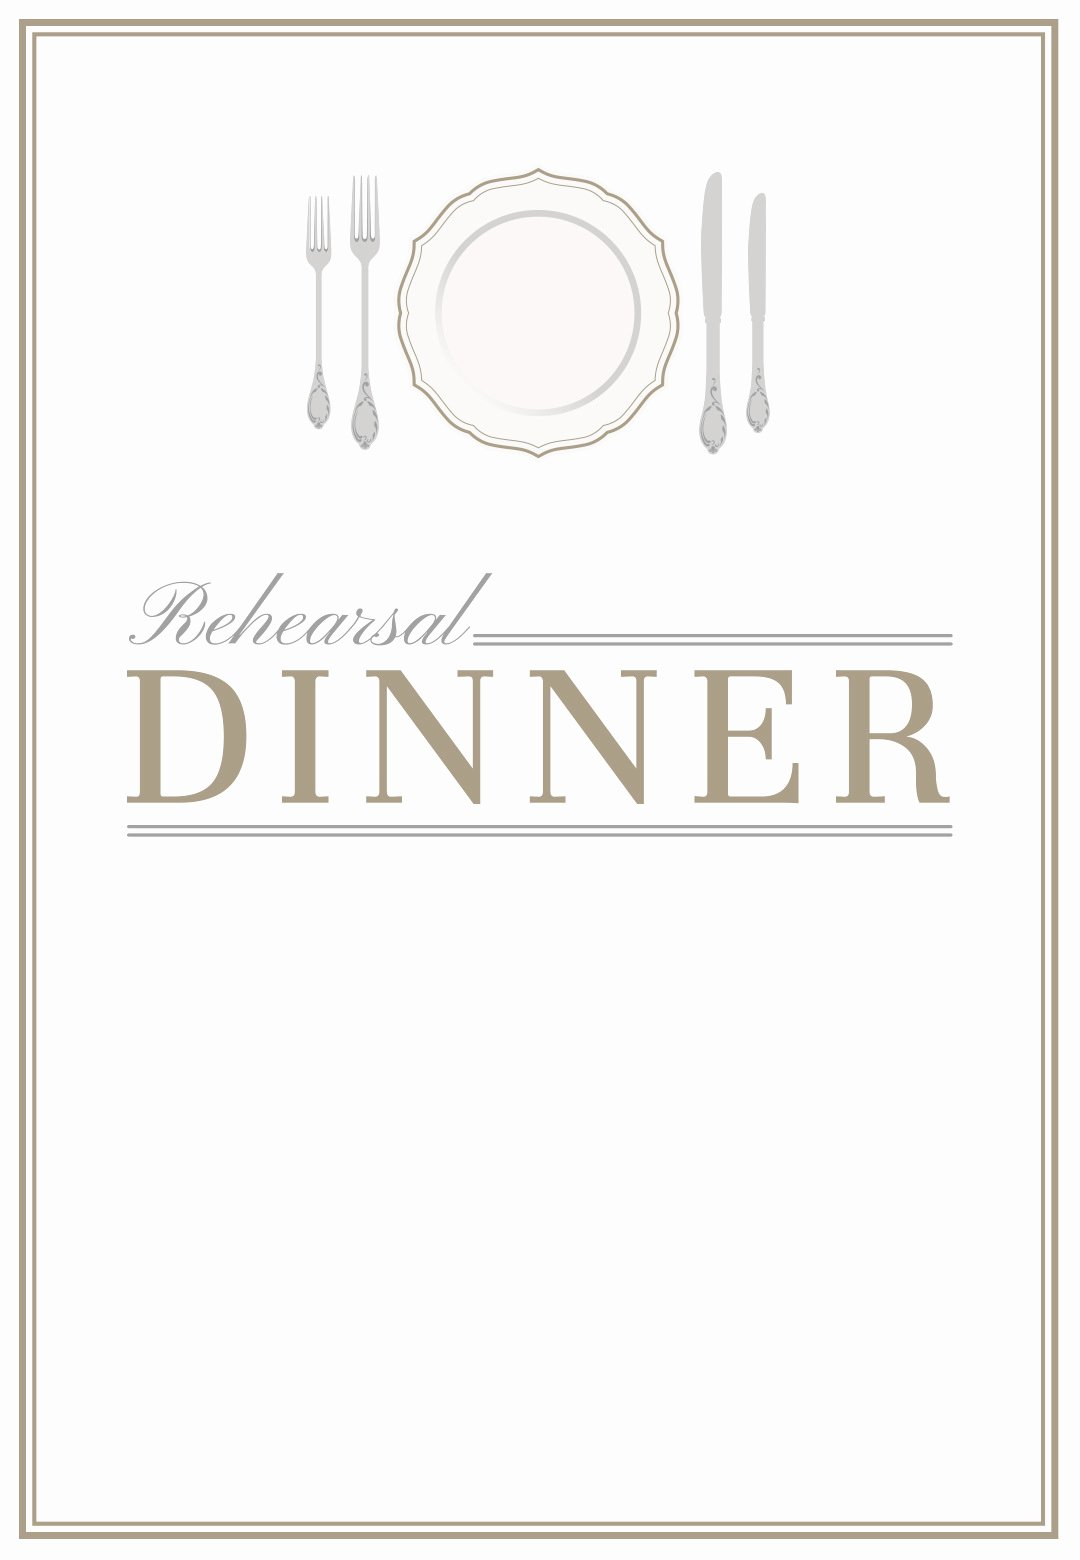 Dinner Invite Template Word Unique Dinner Invitation Templates Free Printable Templates